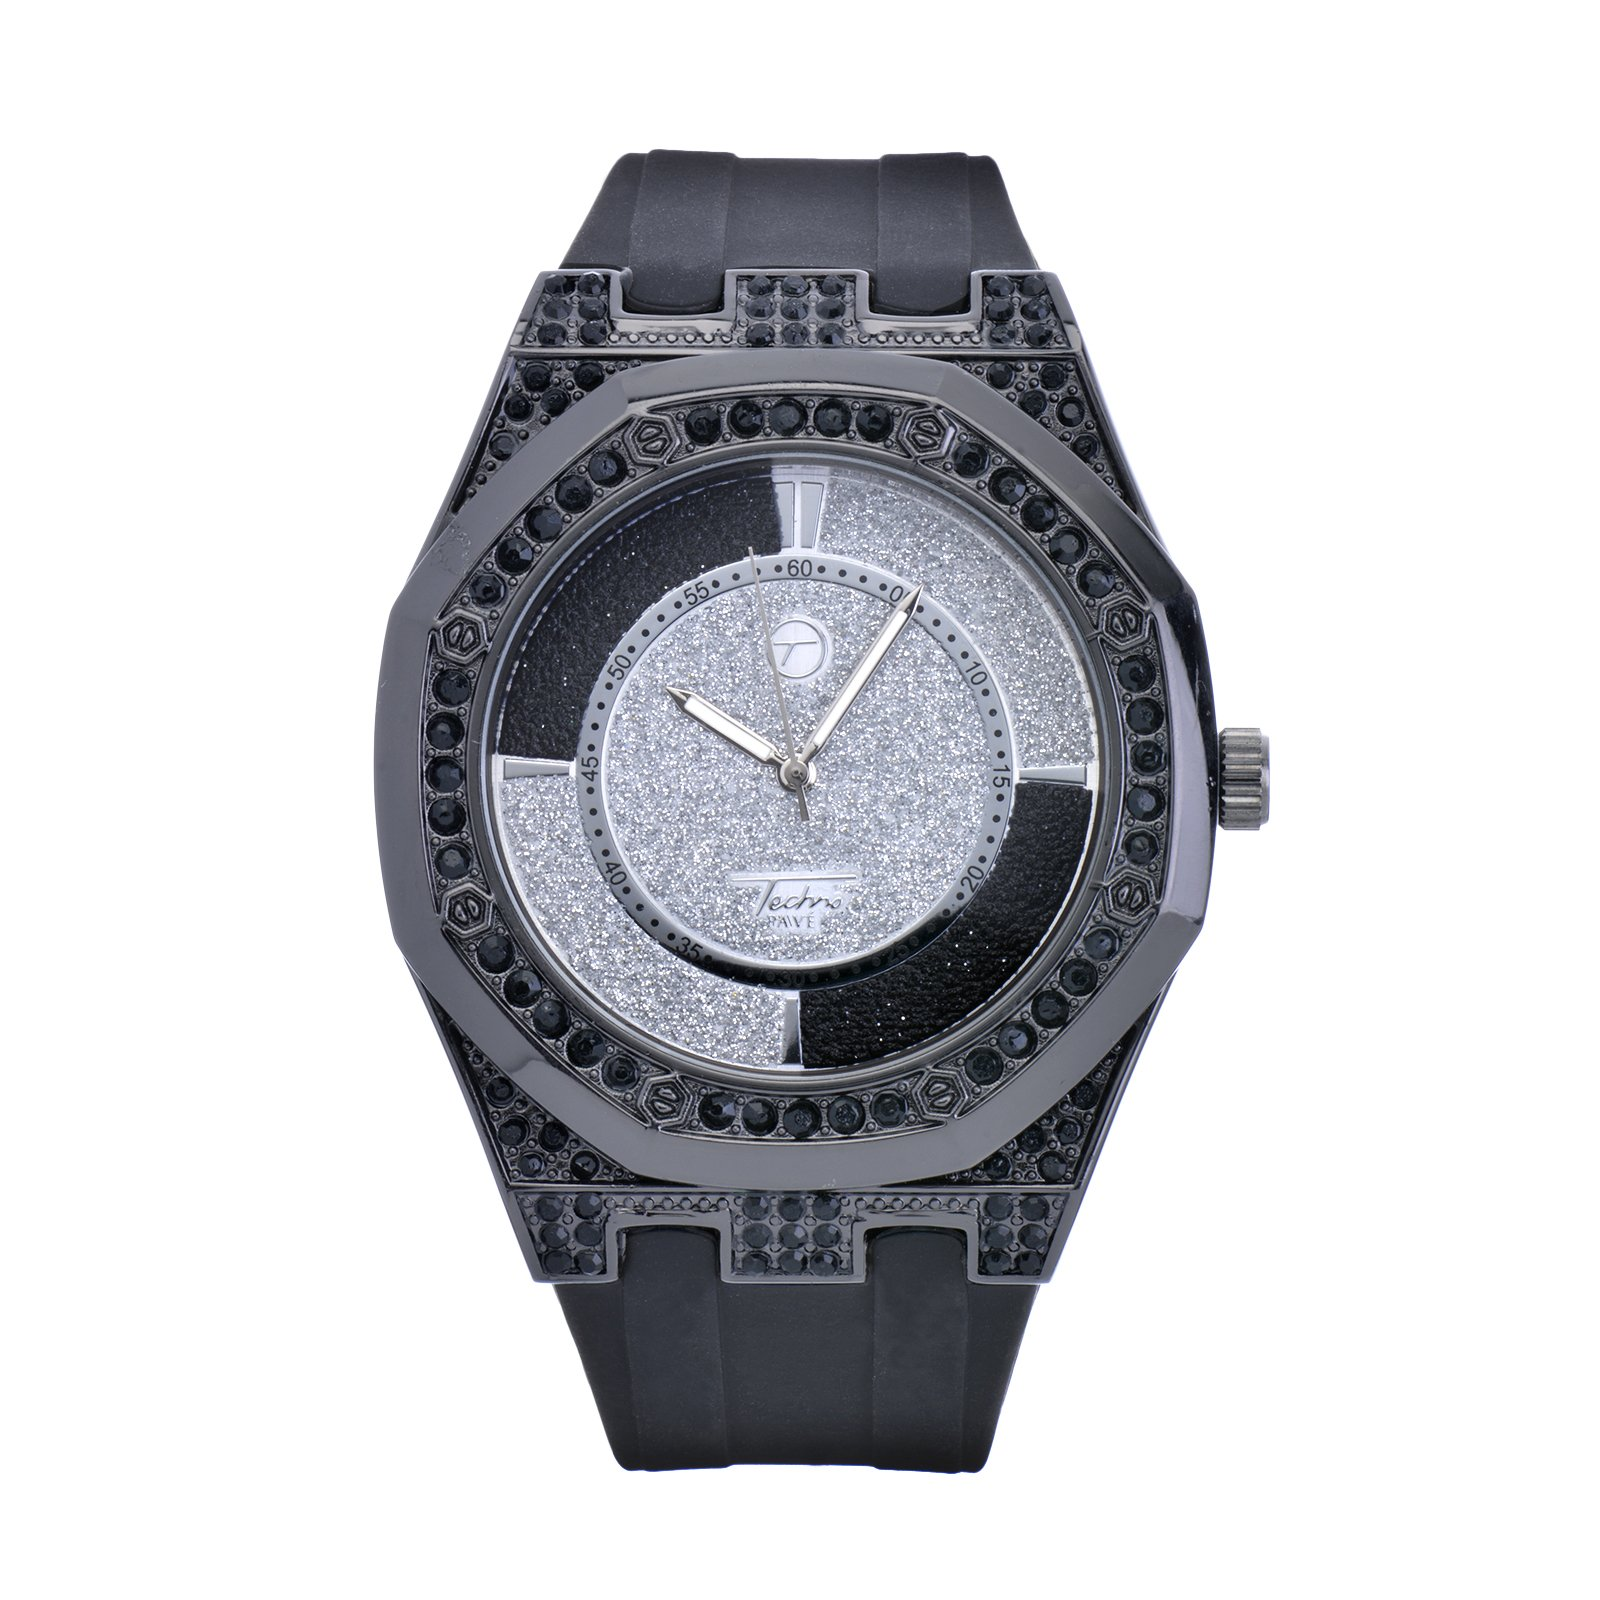 Techno Pave XL Bling Iced Out Black Silicone Band Watches WR 8154 BK